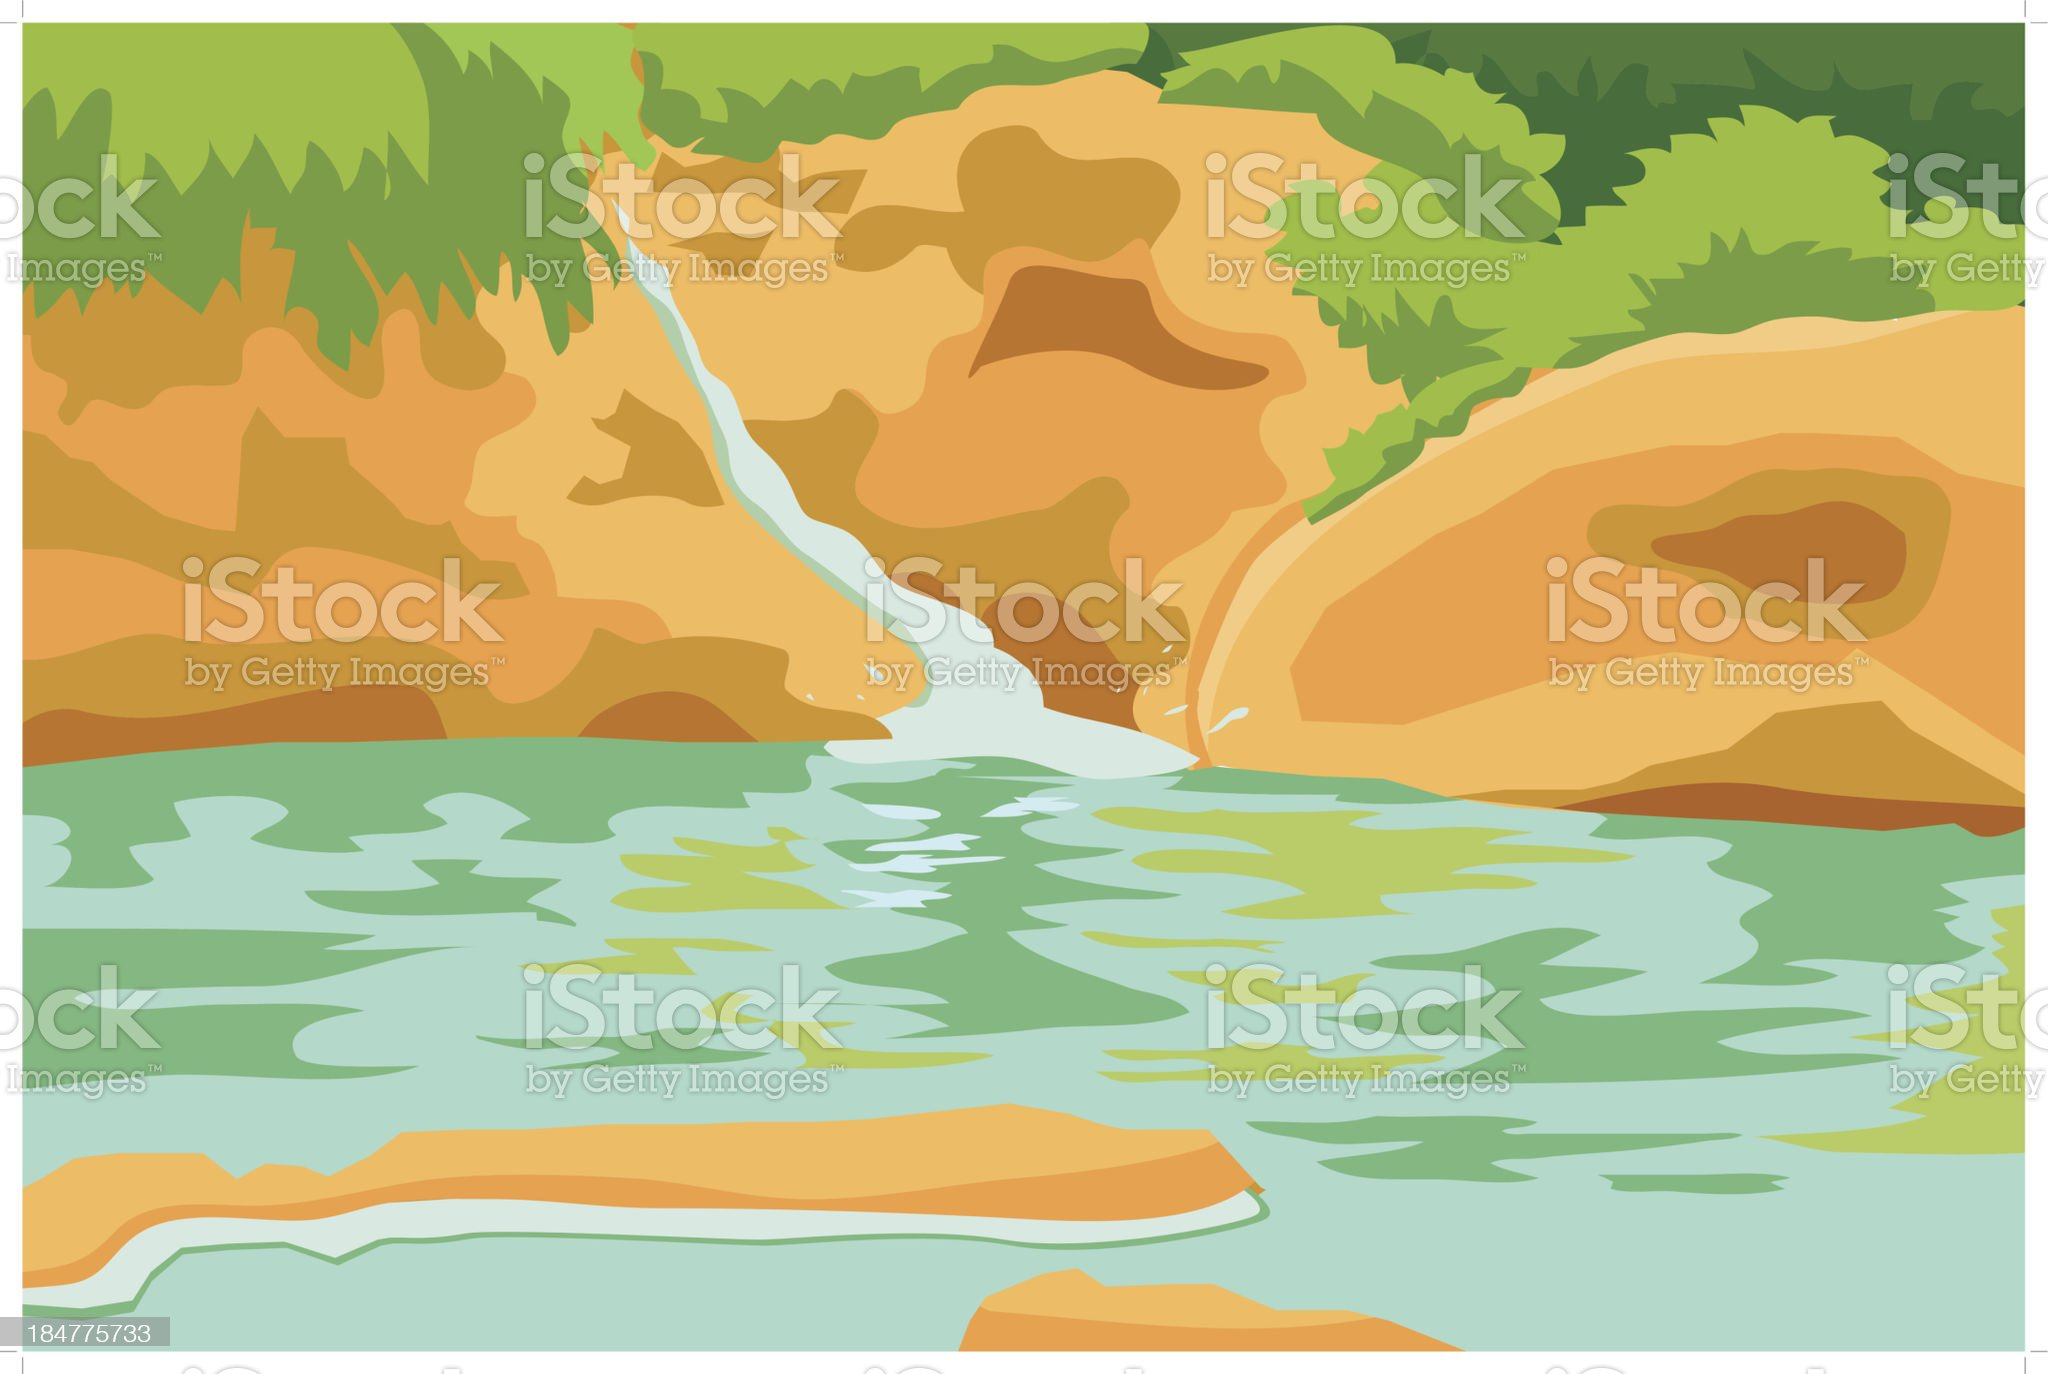 Small Waterfall illustration royalty-free stock vector art